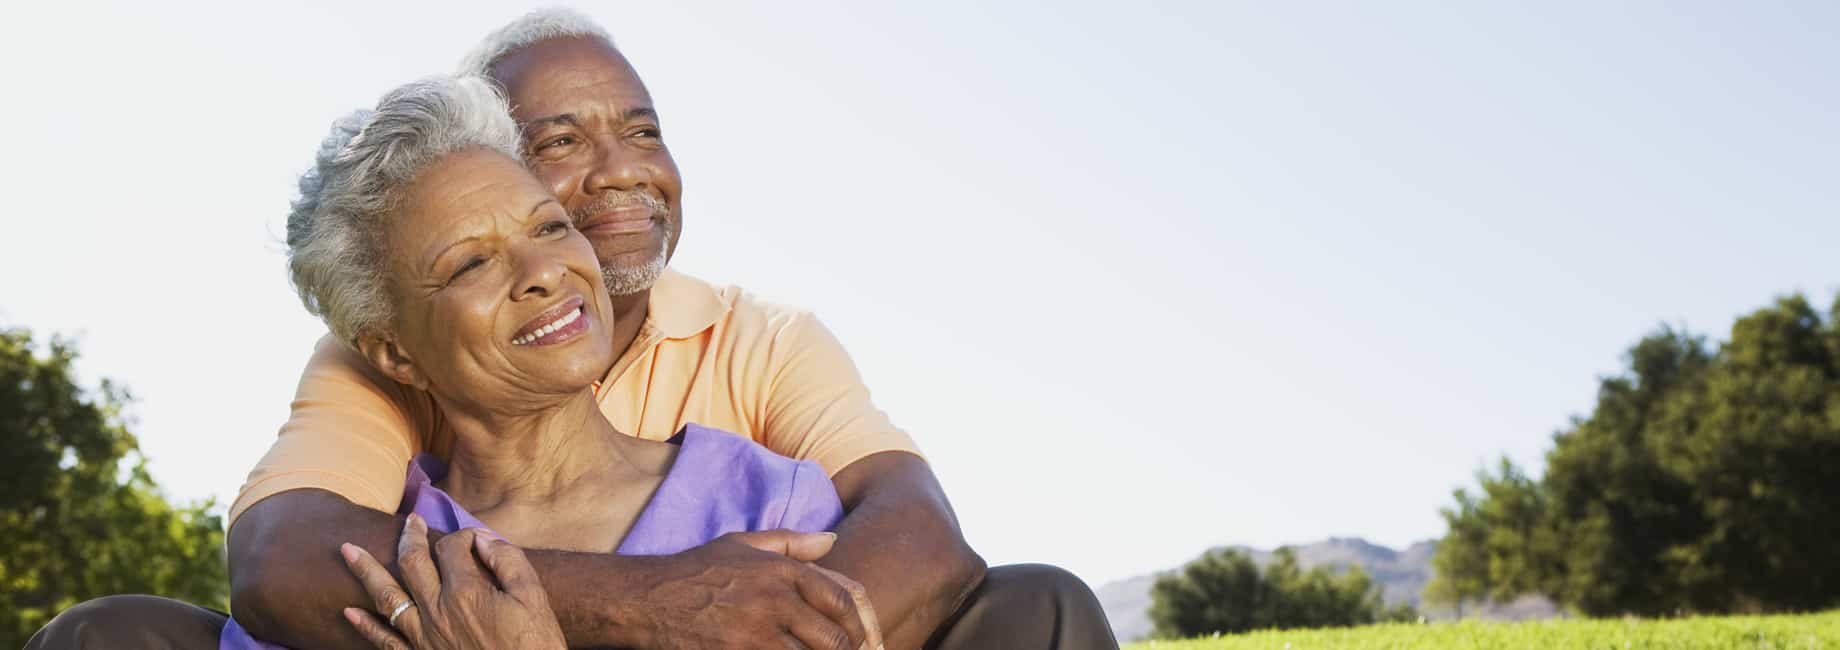 Find a pain management doctor near me in Natchitoches LA